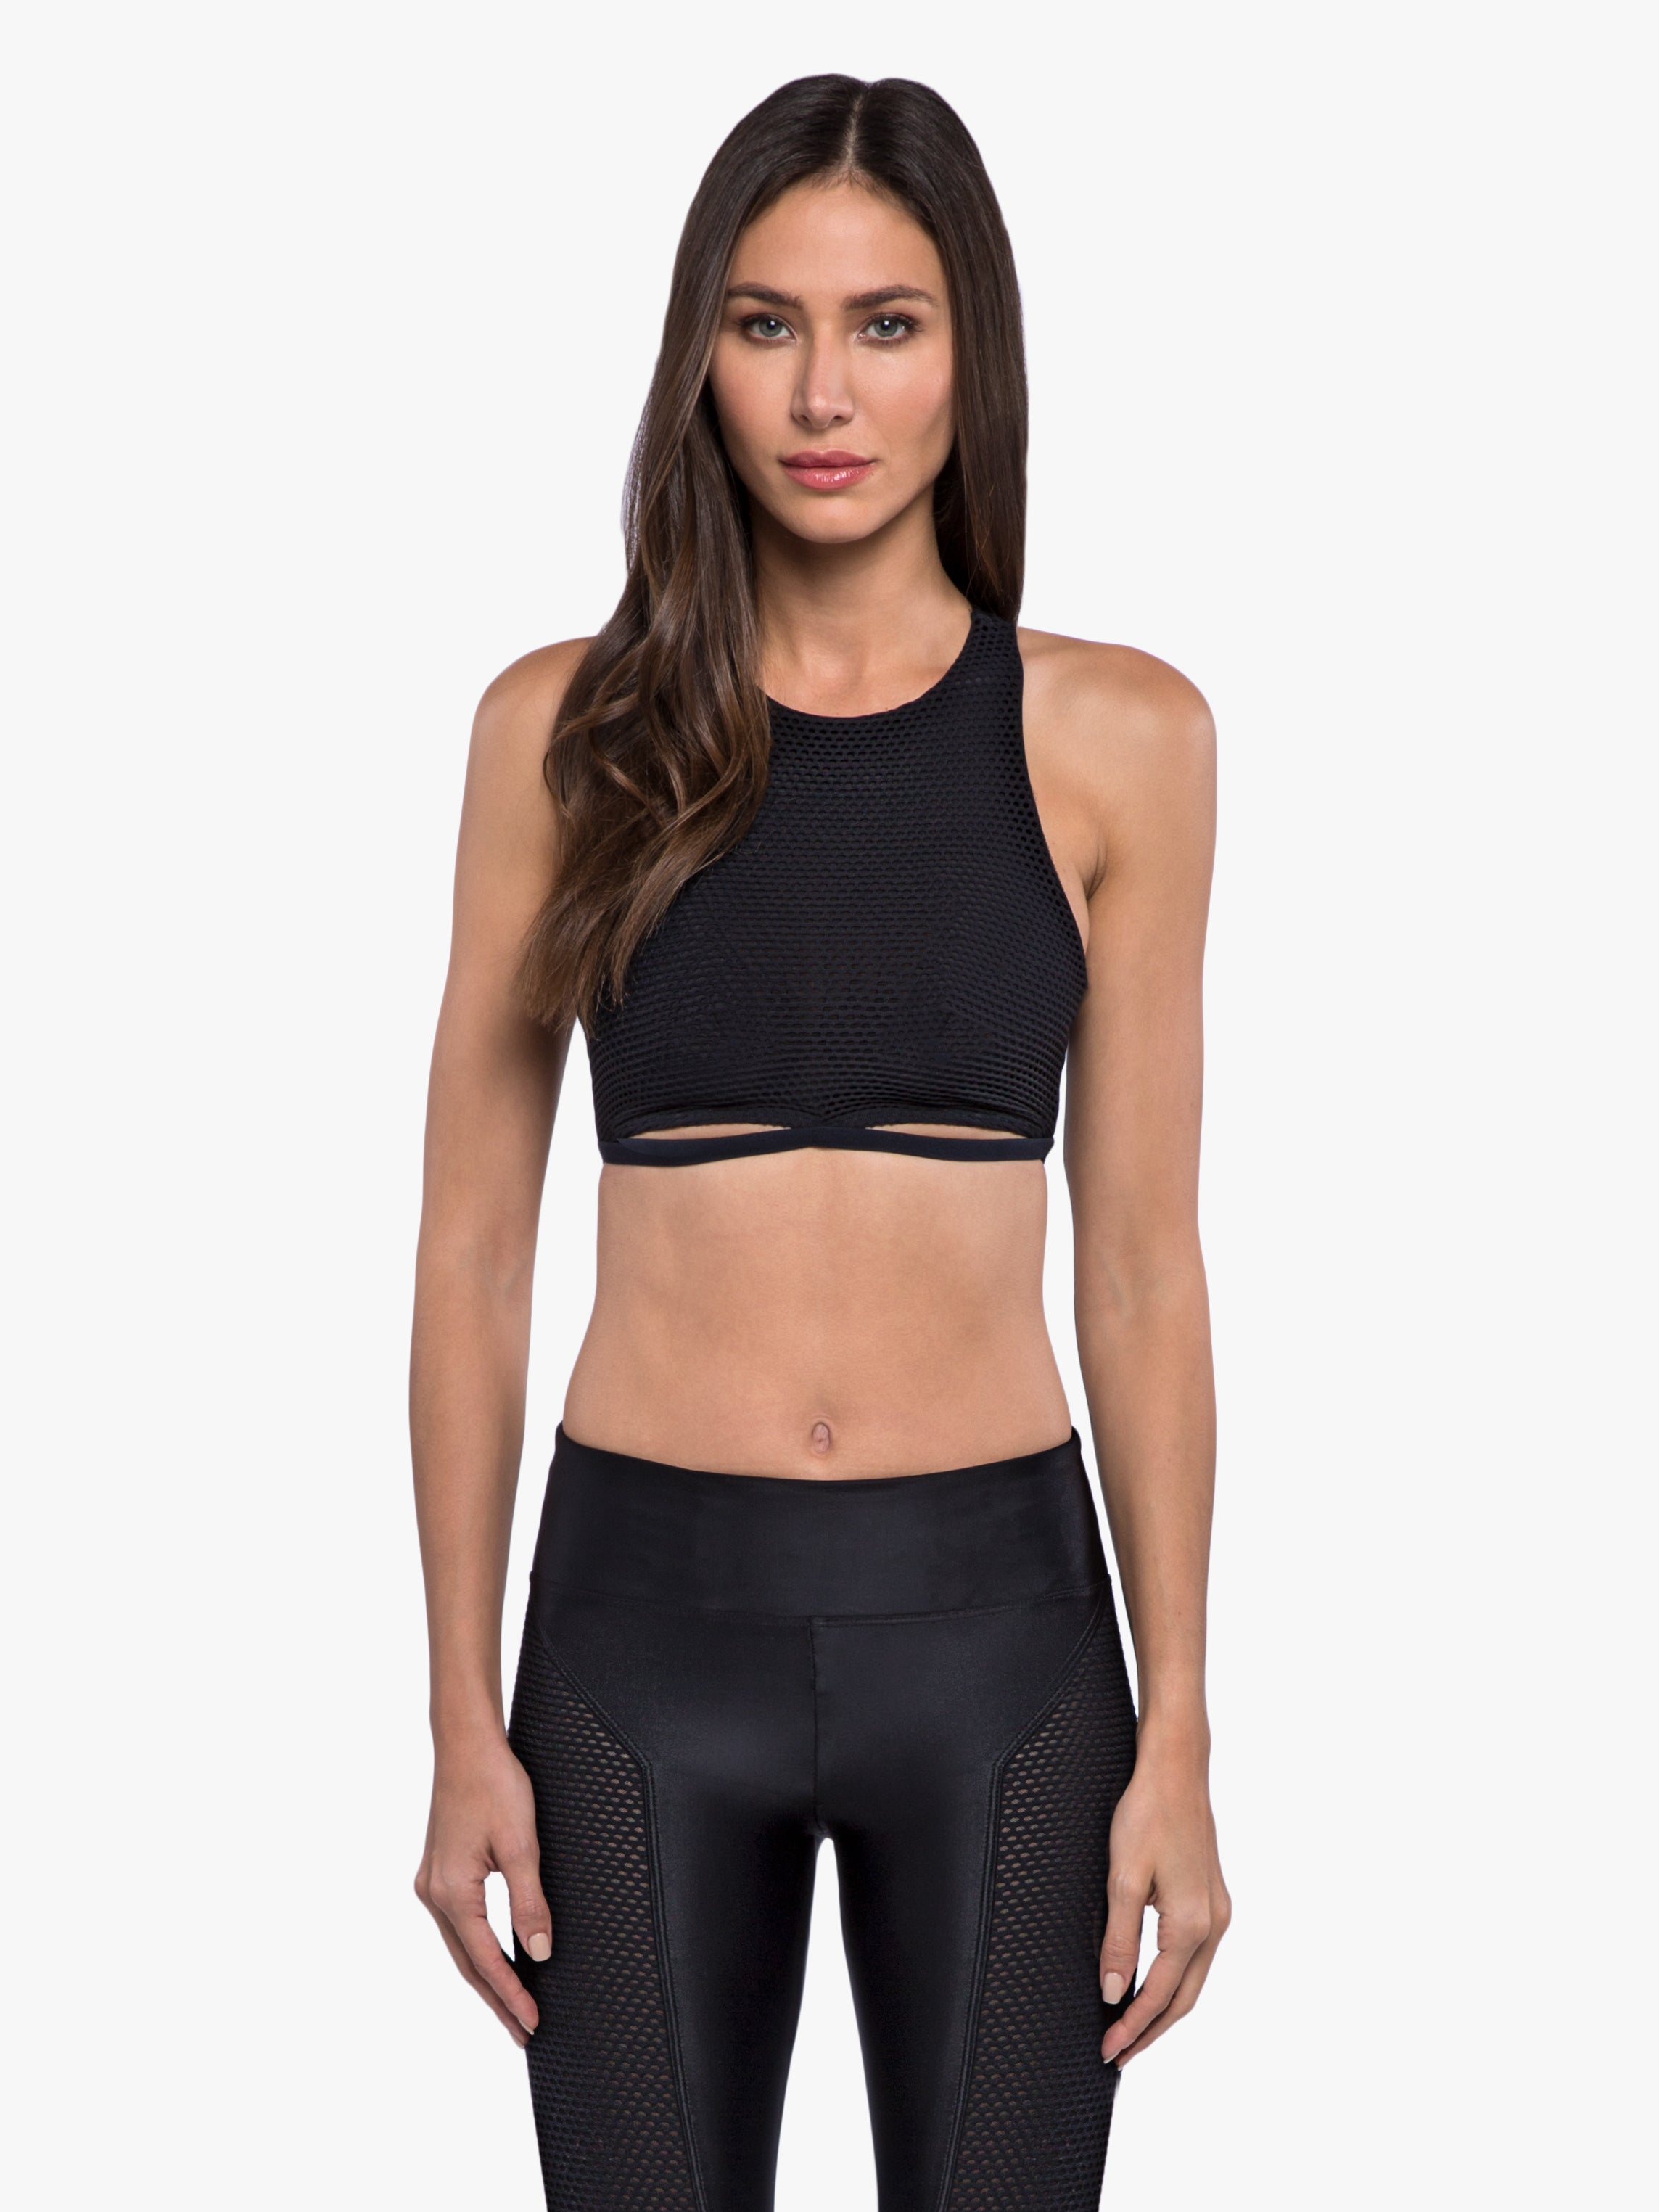 Mesmorize Open Mesh Sports Bra - Black